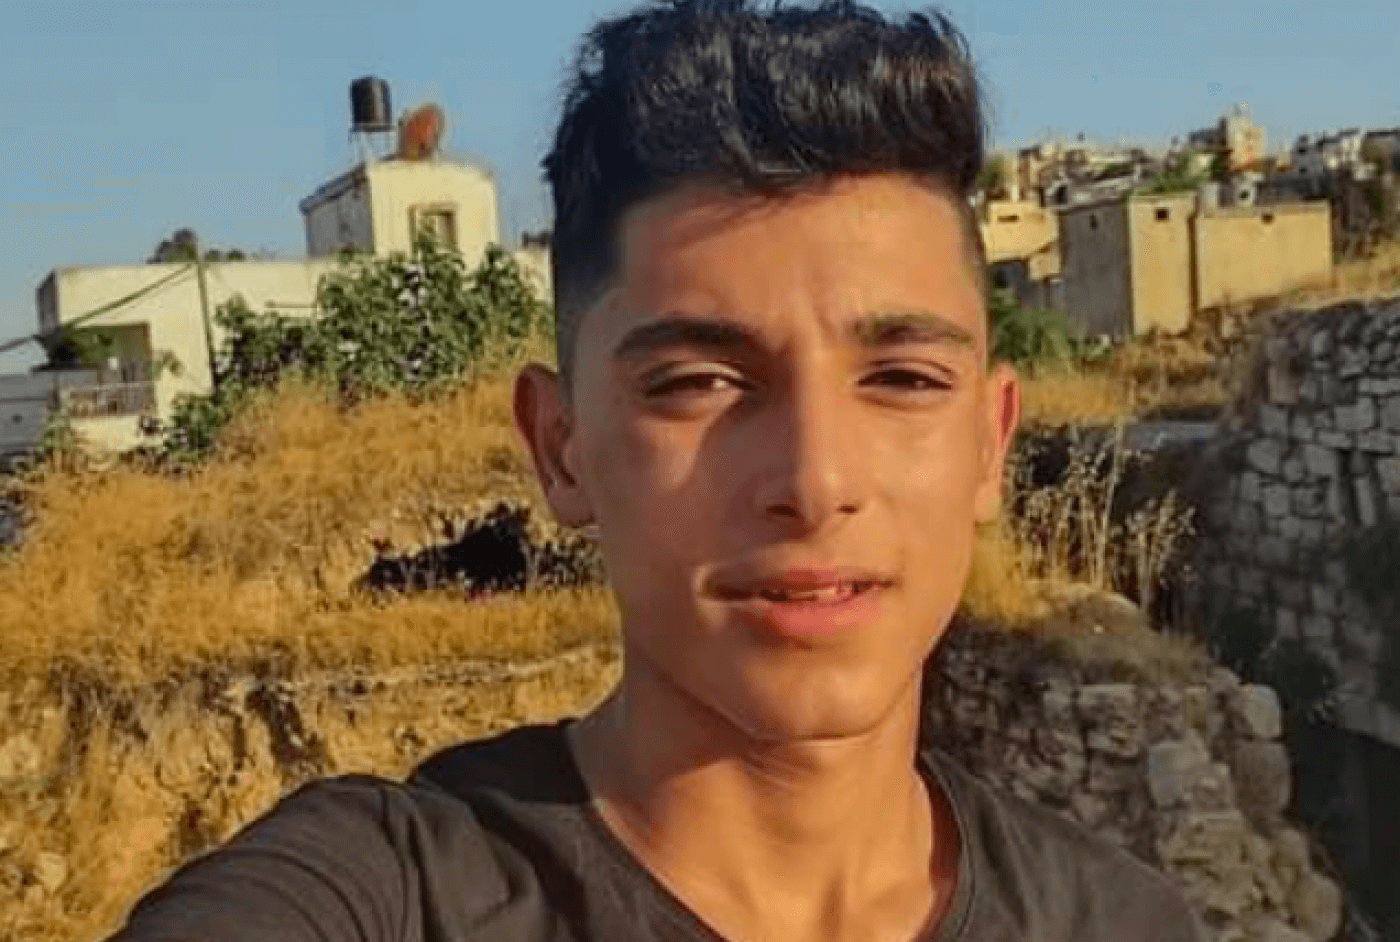 16-year-old Palestinian is the fifth to be killed by Israeli forces in West Bank village of Beita since May